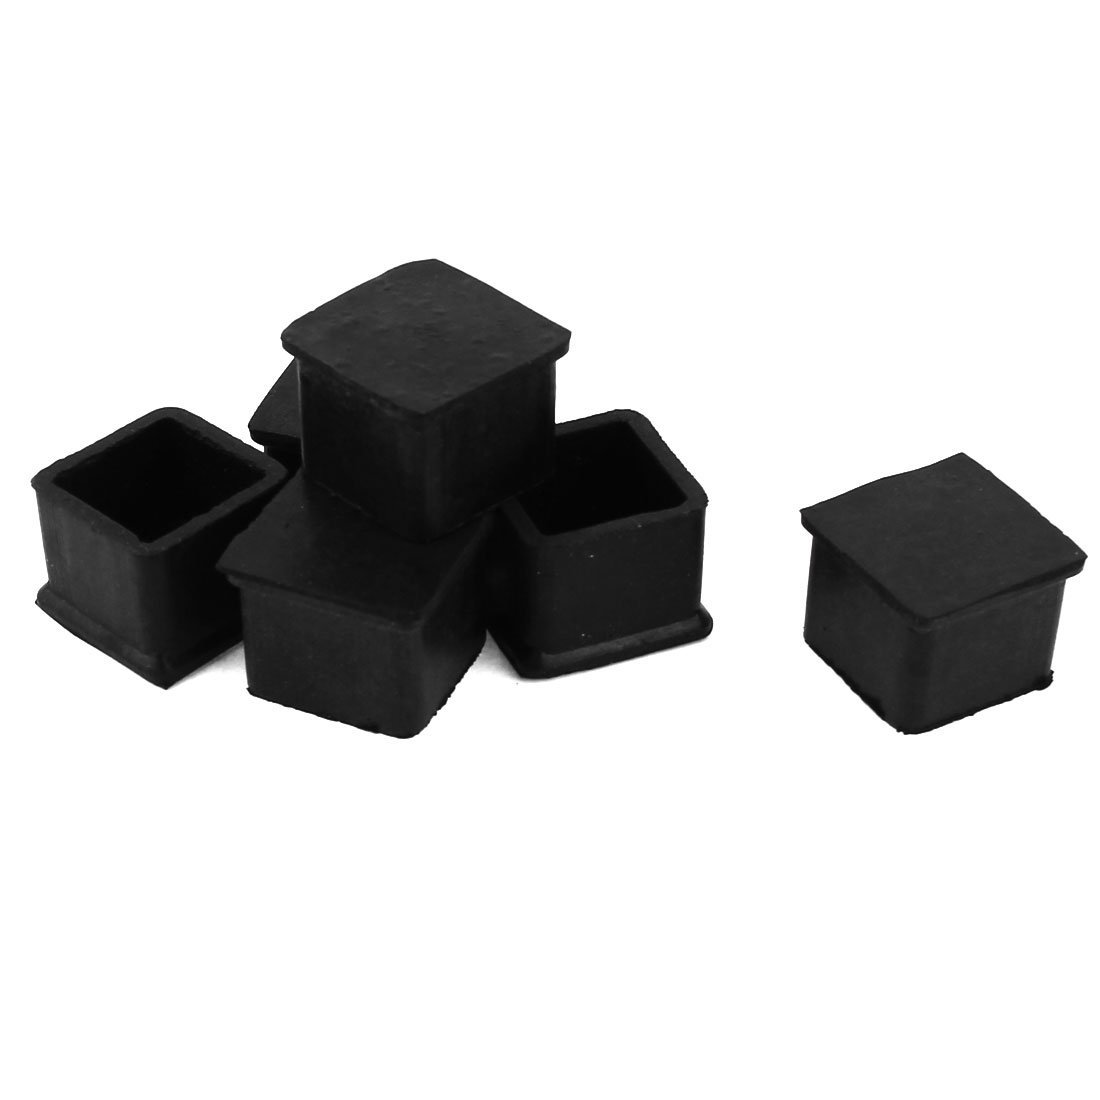 Hot Sale Rubber End Caps Furniture Foot / Floor Protector, 25 Mm X 25 Mm, 6 Pieces